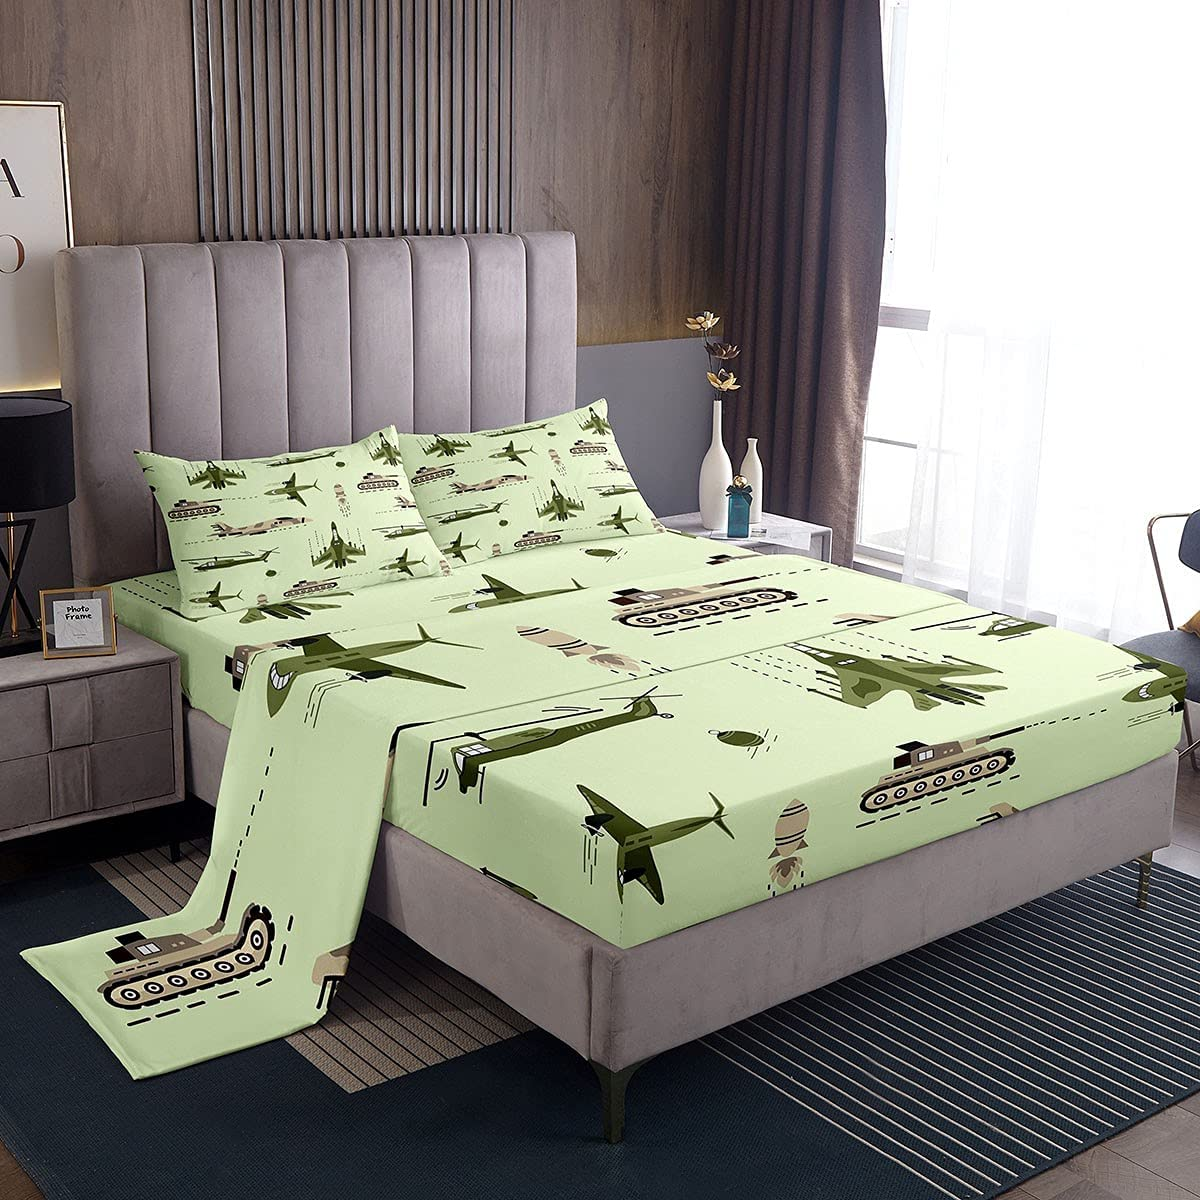 Feelyou 3D Army Helicopter free shipping Bed Airplane Set for Sheets Luxury Tank